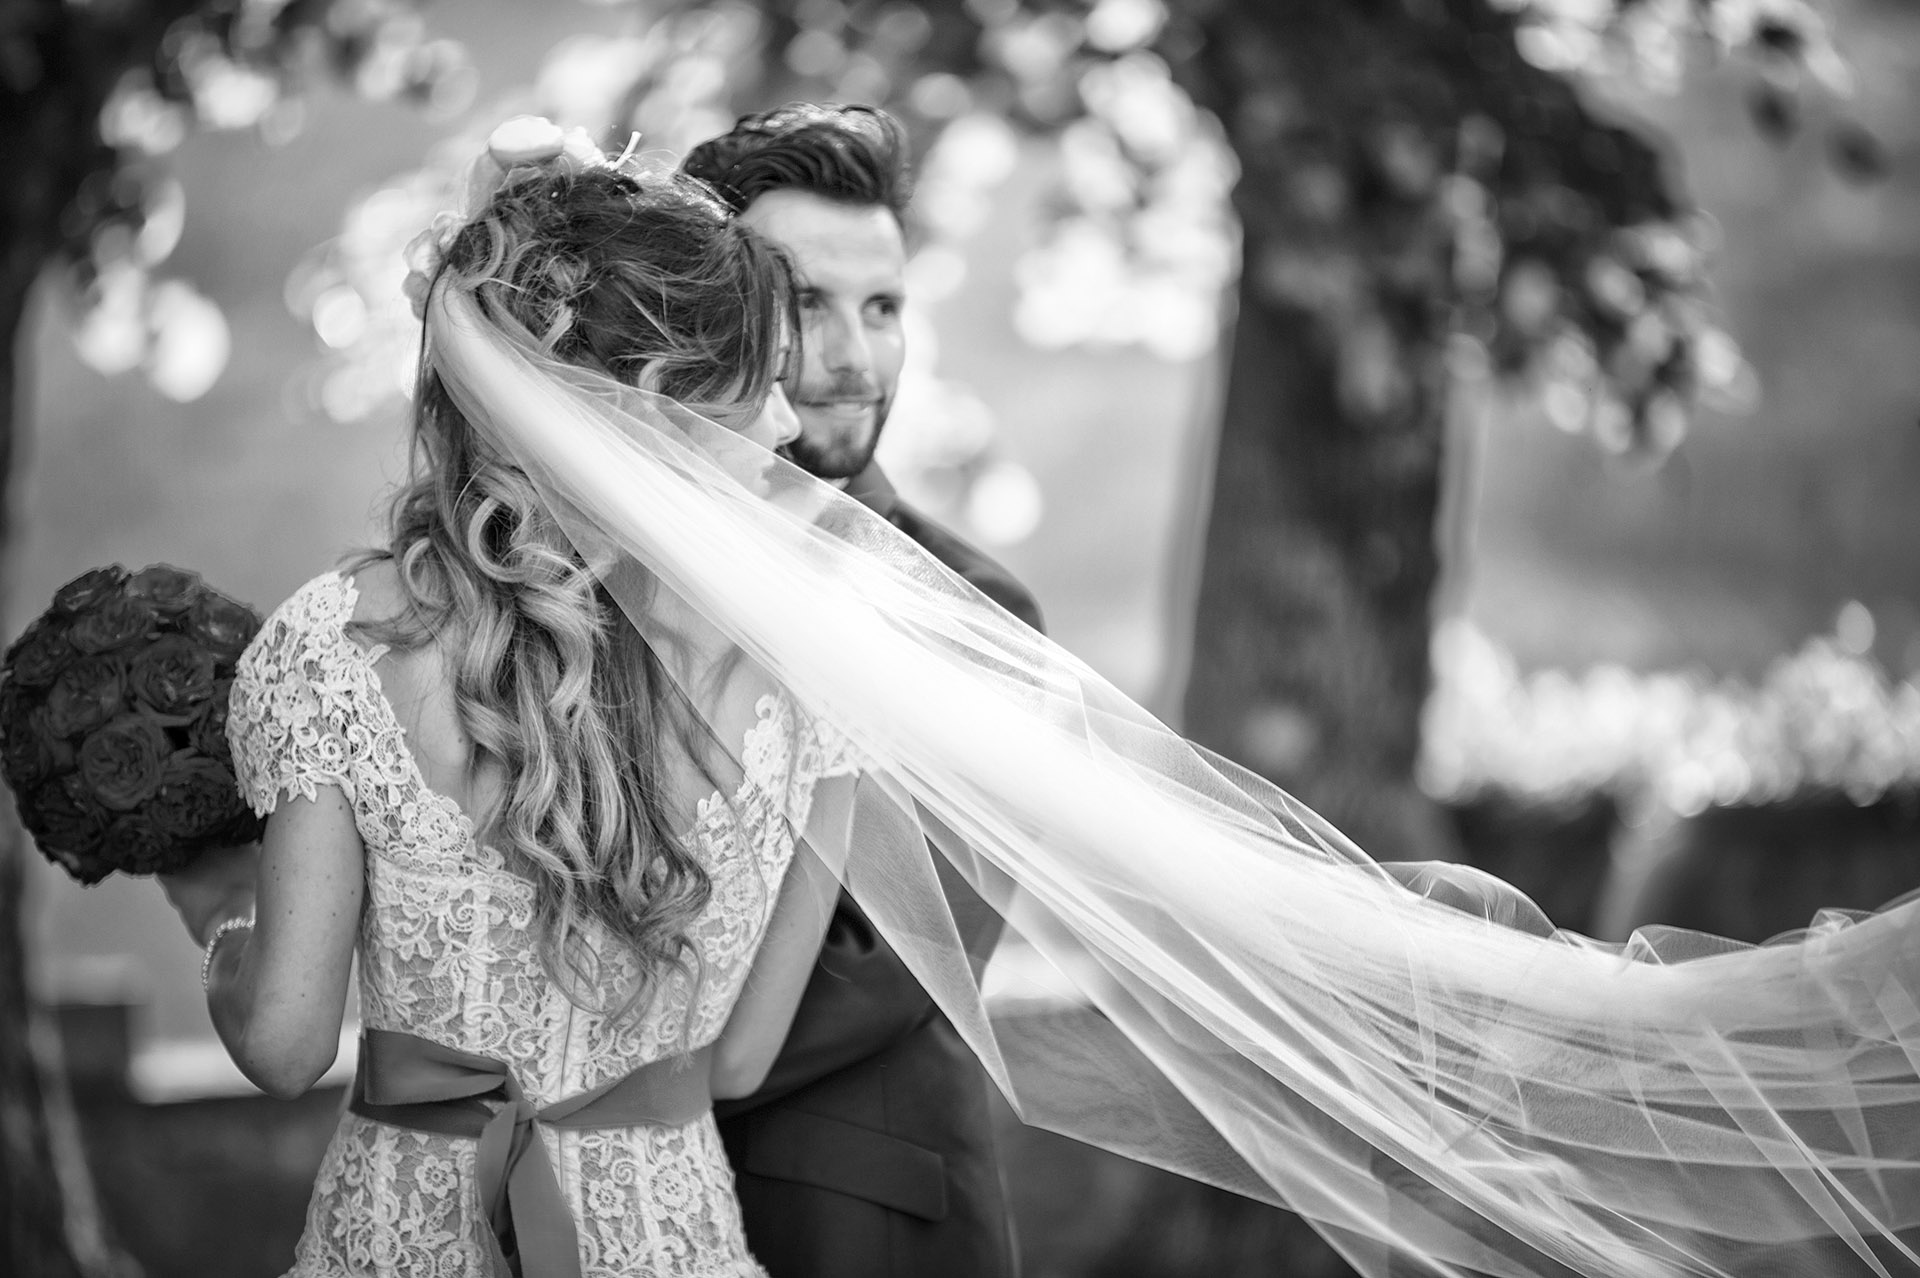 international-wedding-photographer-tuscany-florence-fotografi-matrimonio-gaiole-chianti-siena-toscana-firenze-album-matrimonio-location-esclusiva-migliori-fotografi-matrimonio-best-selected-photographers29